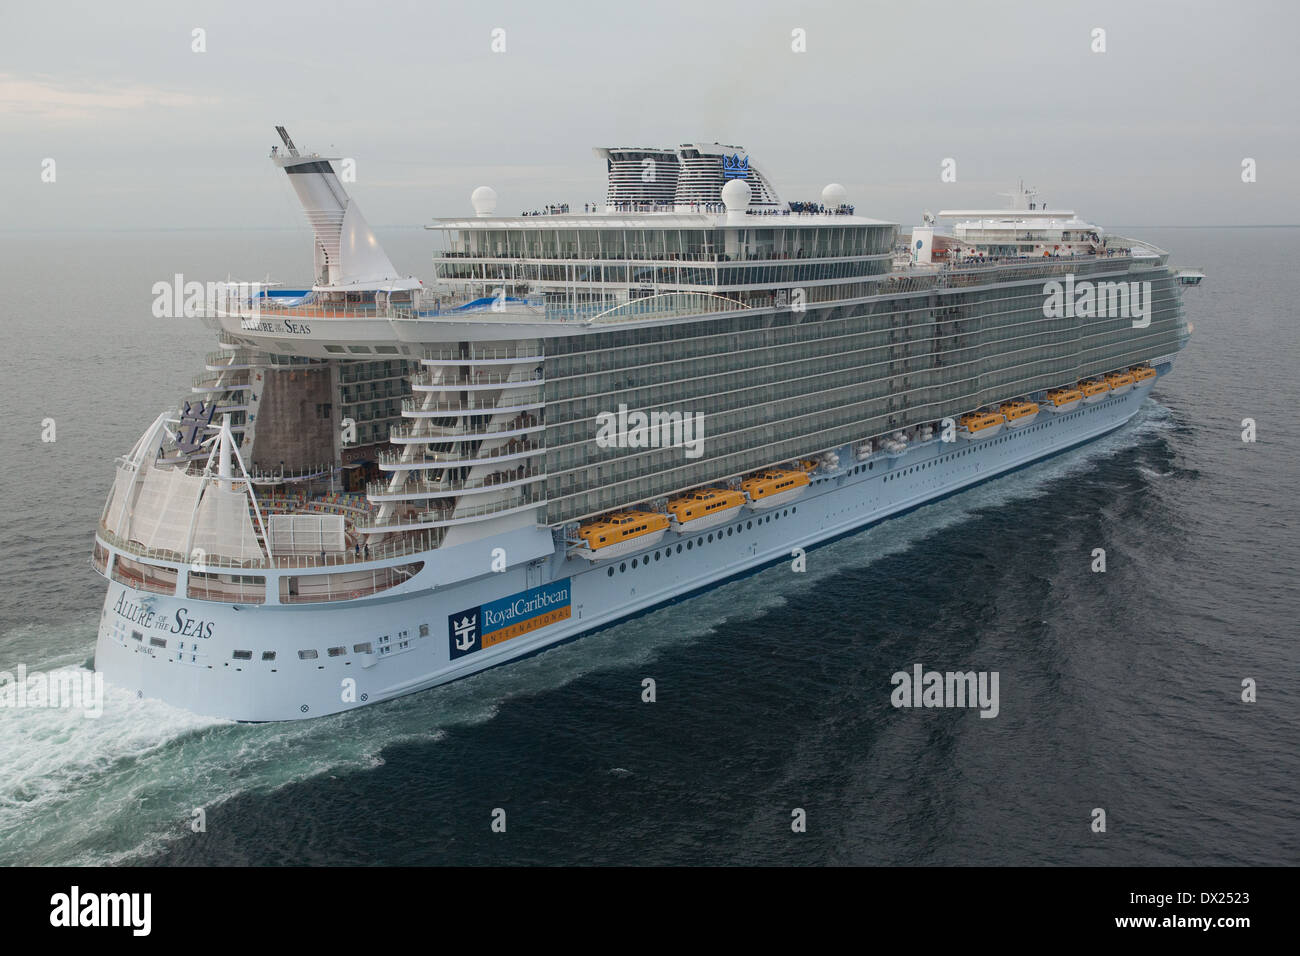 Aerial photo of allure of the seas a cruise ship owned by royal stock photo royalty free image - The allure of the modular home ...